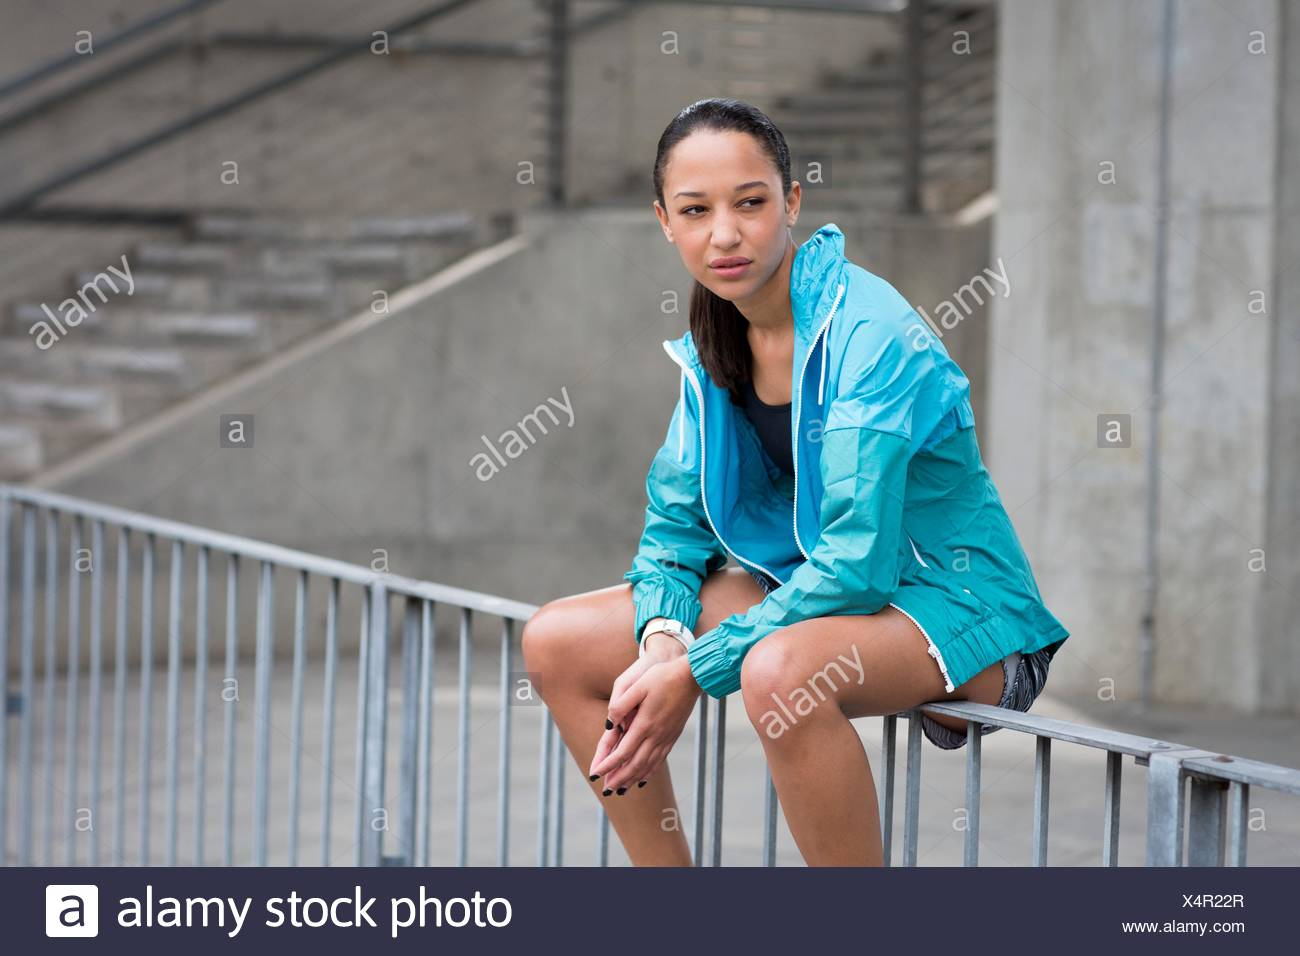 MODEL RELEASED. Portrait of young woman sitting on railings looking away. - Stock Image